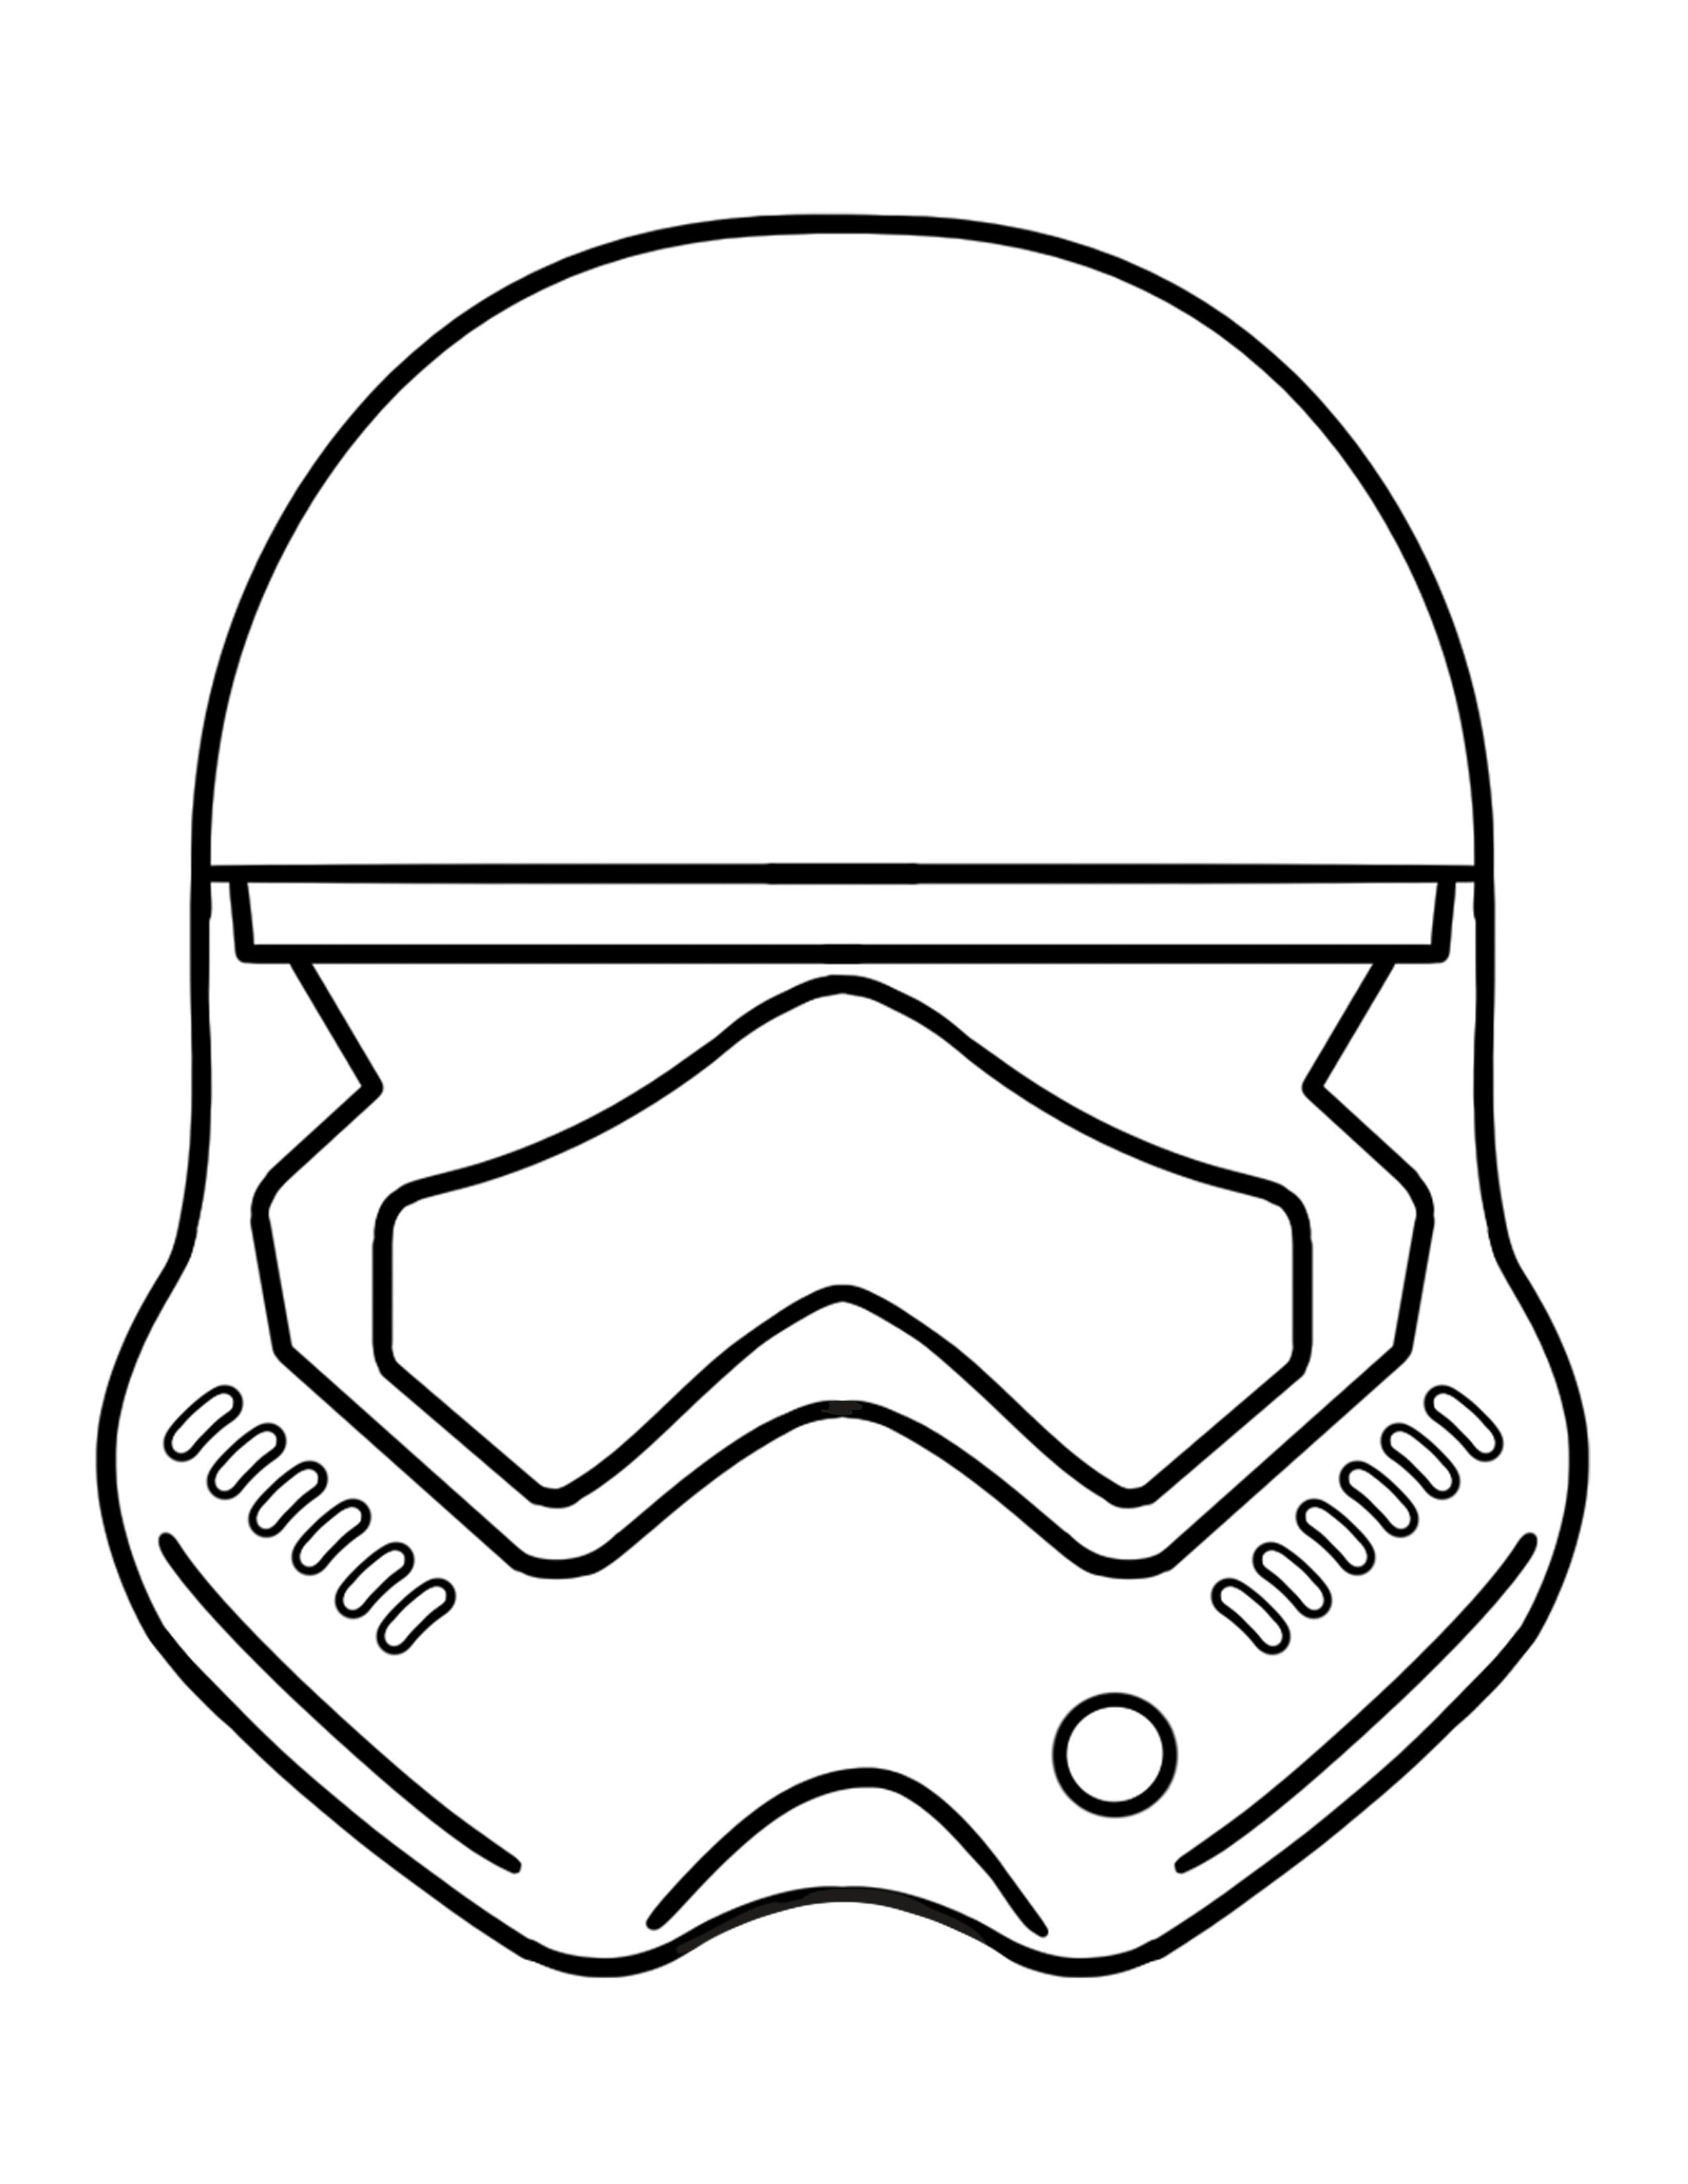 coloring pages with stars death star coloring page at getcoloringscom free pages stars coloring with